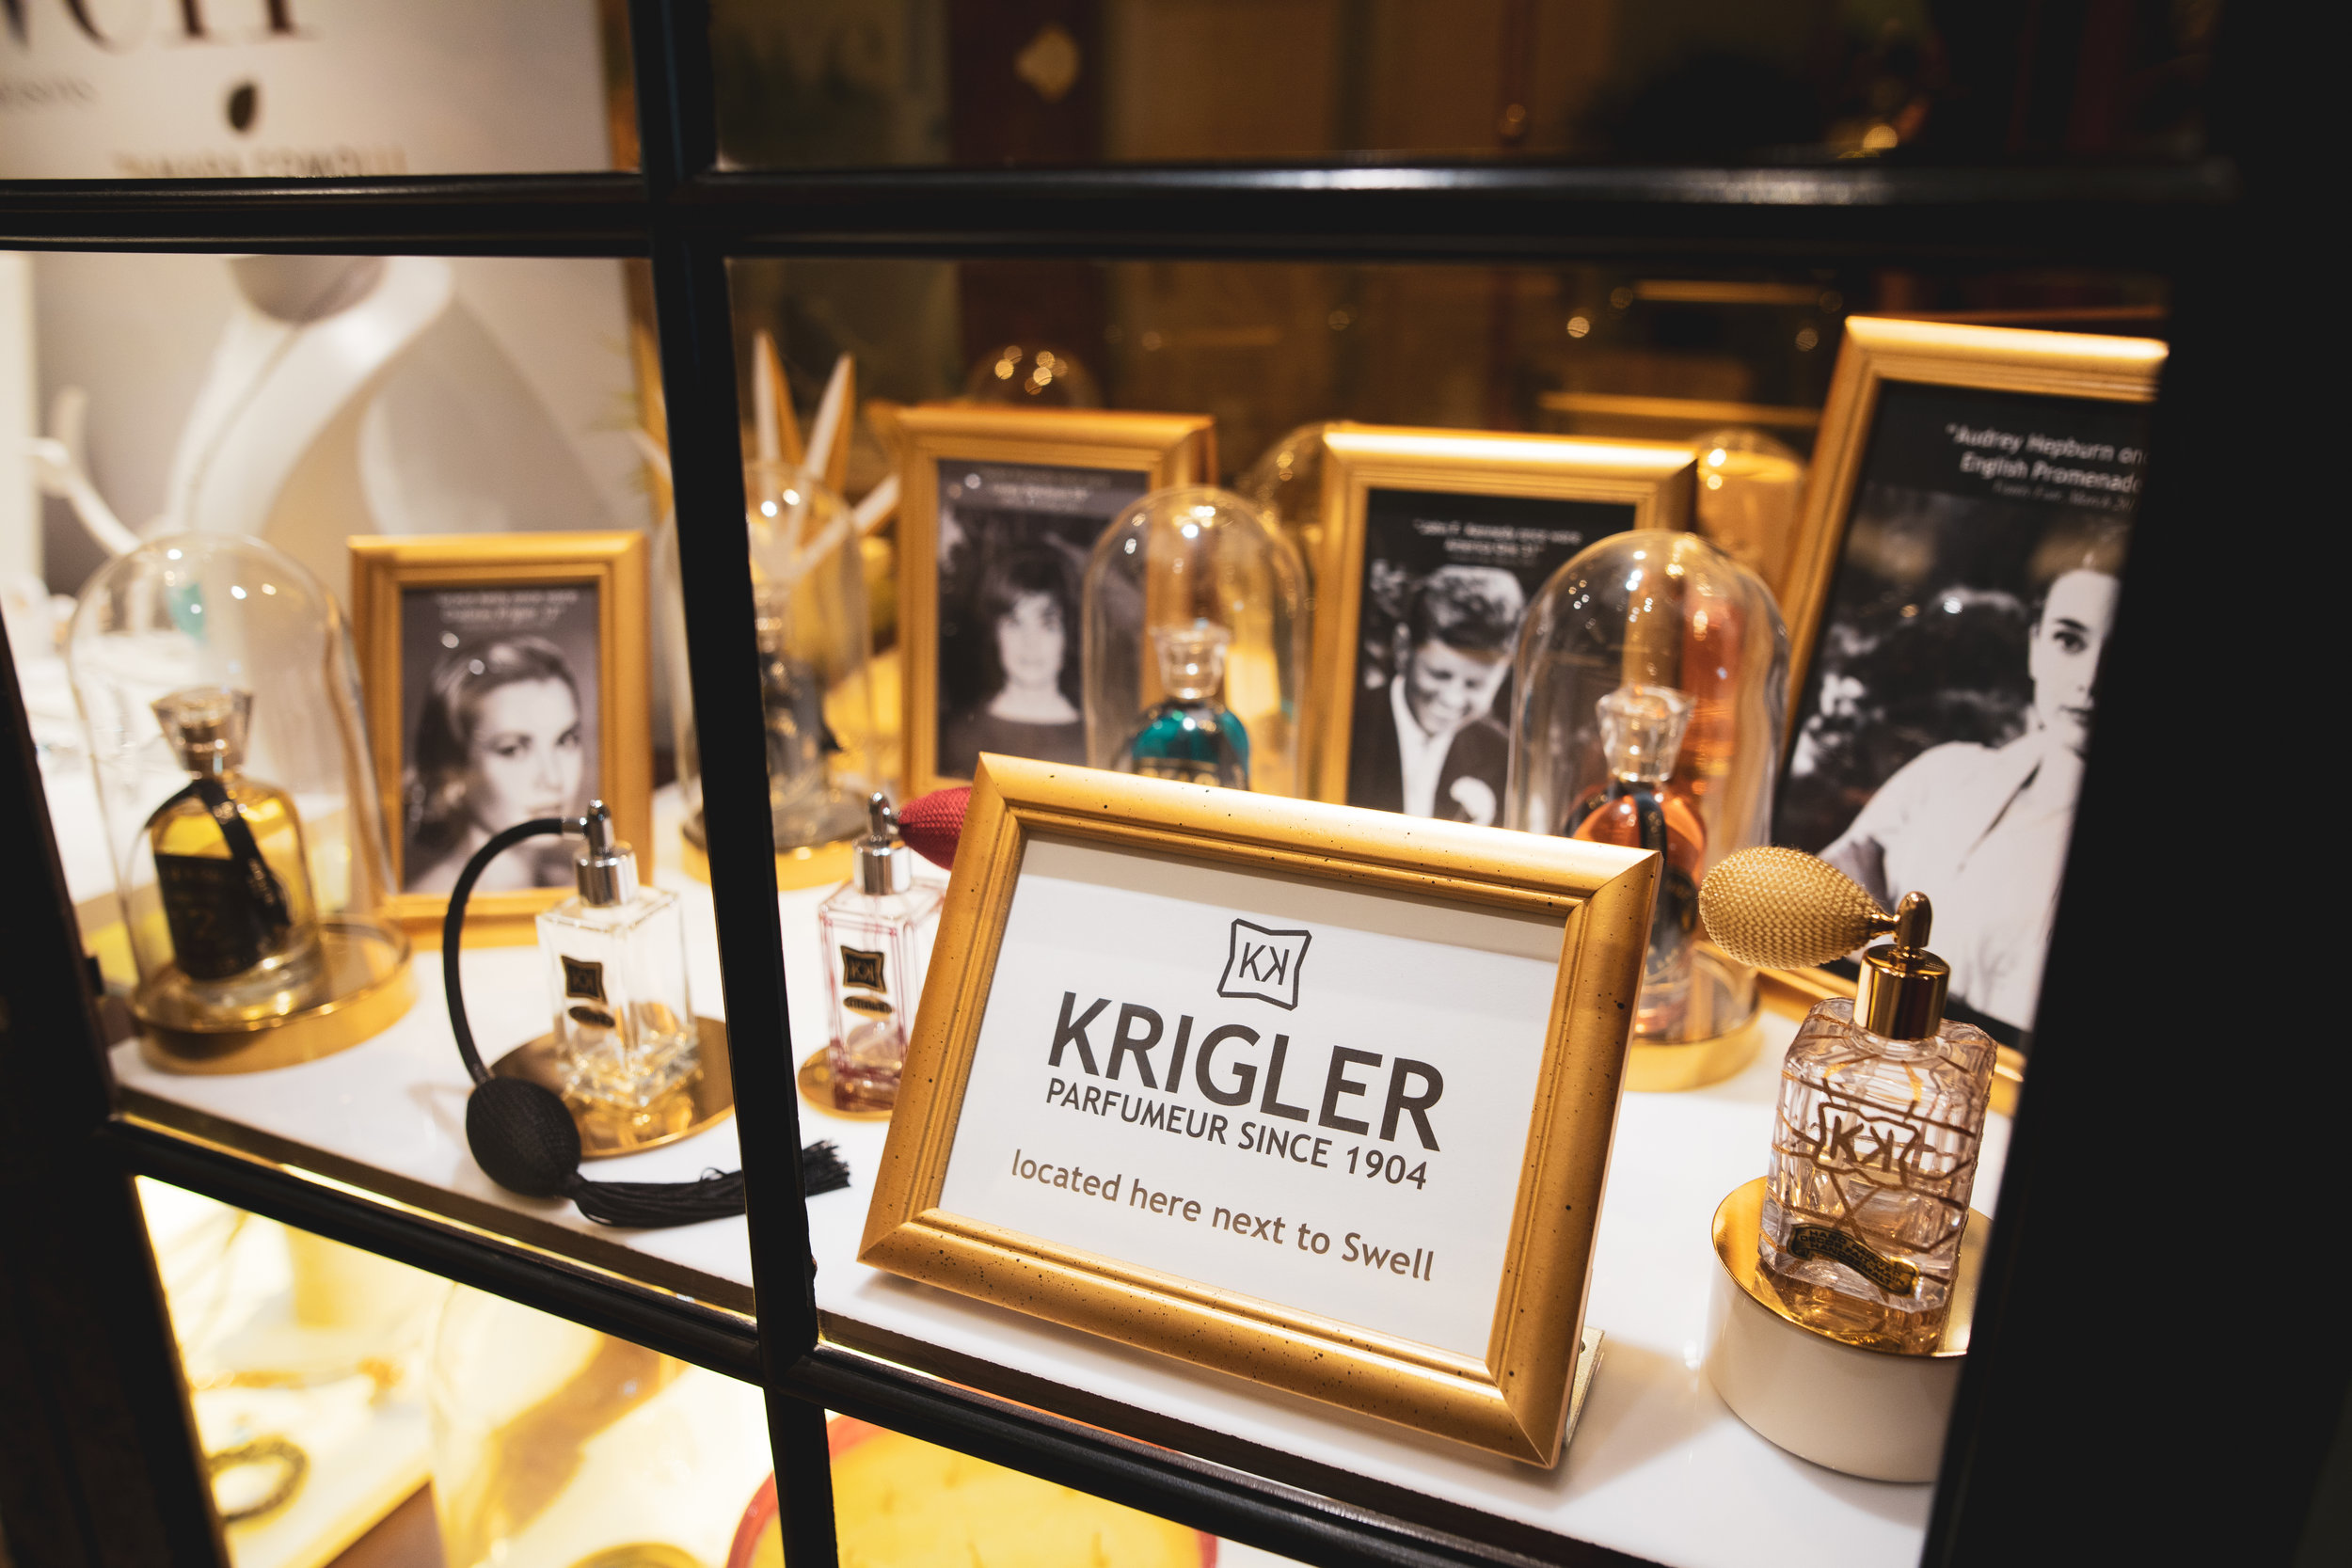 krigler parfumeur four seasons palm beach © kelilina photography 2019 20190409153642-1.jpg